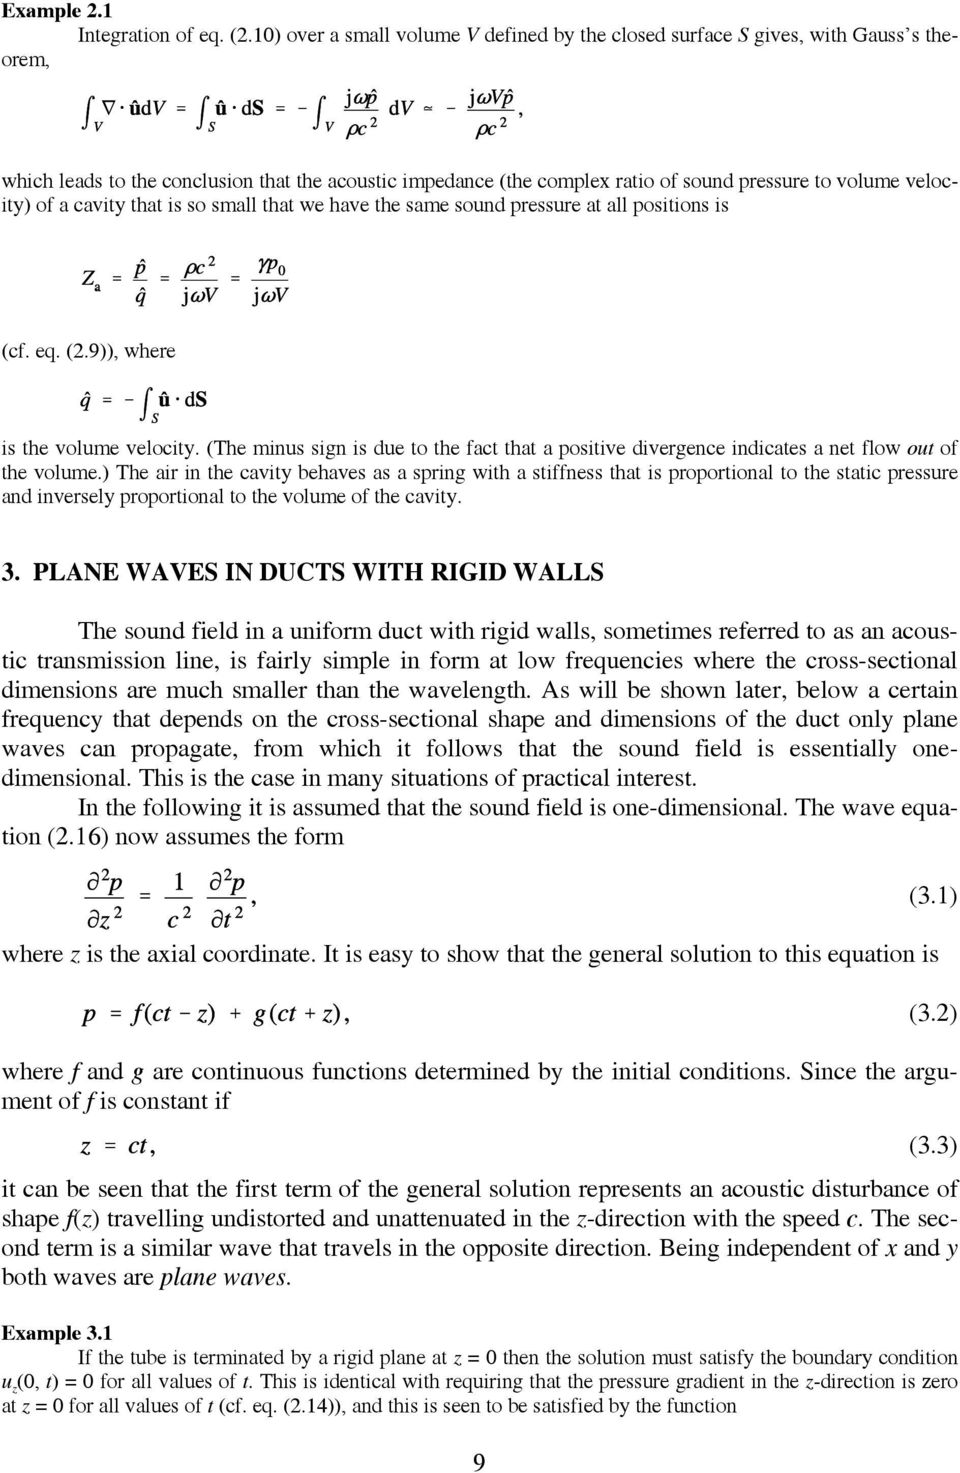 PROPAGATION OF SOUND WAVES IN DUCTS - PDF